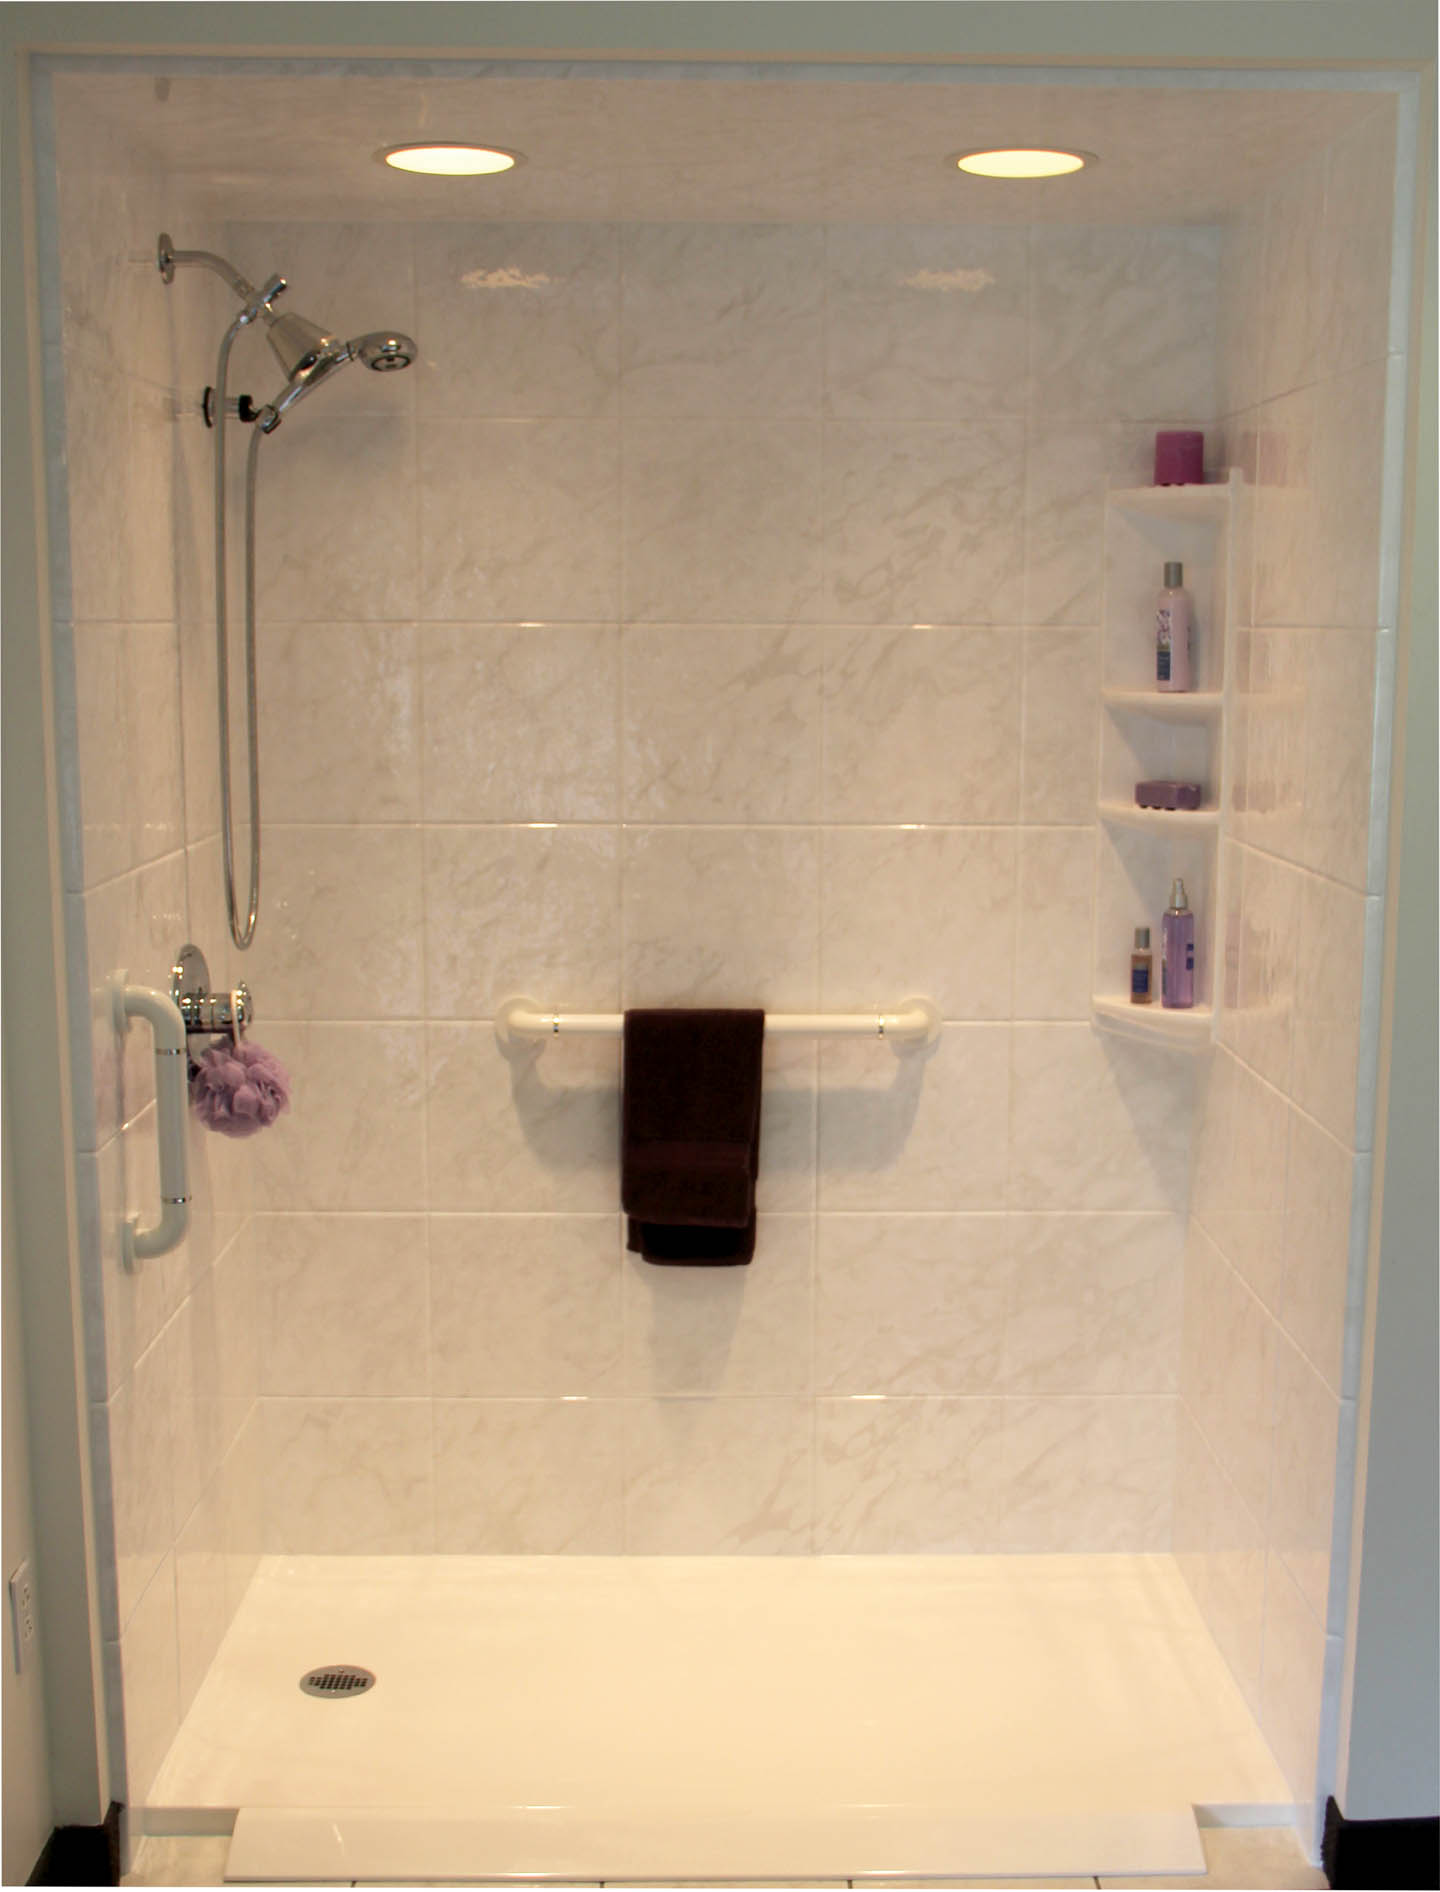 Rebath Northeast Offers Great Deal On Tub To Shower